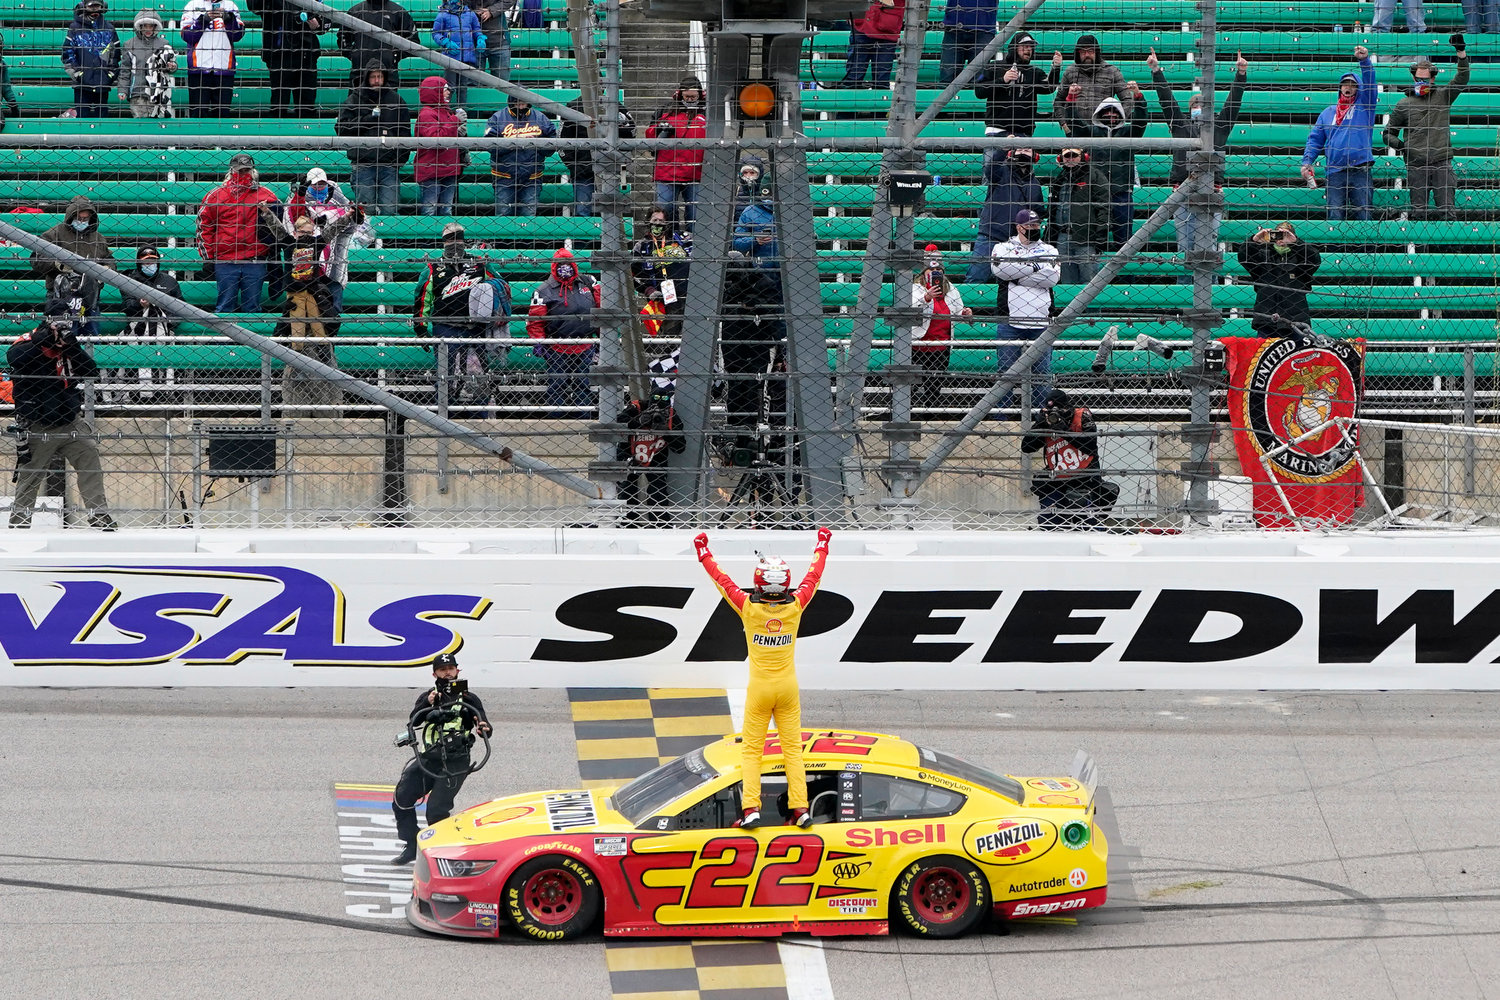 Joey Logano celebrates after winning a NASCAR Cup Series auto race at Kansas Speedway in Kansas City, Kan., Sunday, Oct. 18, 2020. (AP Photo/Orlin Wagner)